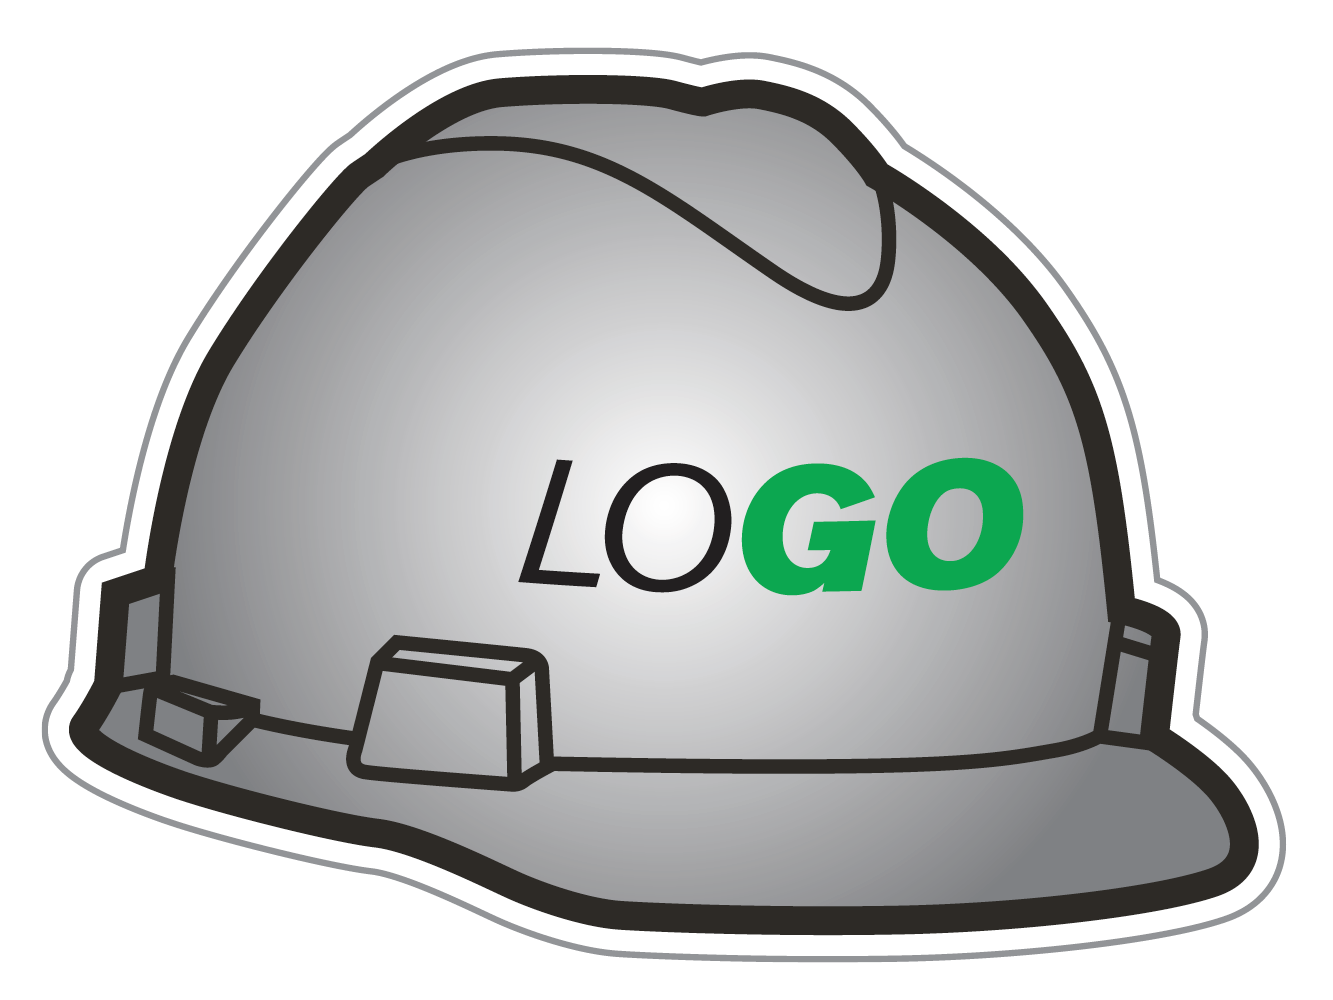 MSA hard hat icon with custom logo across the front